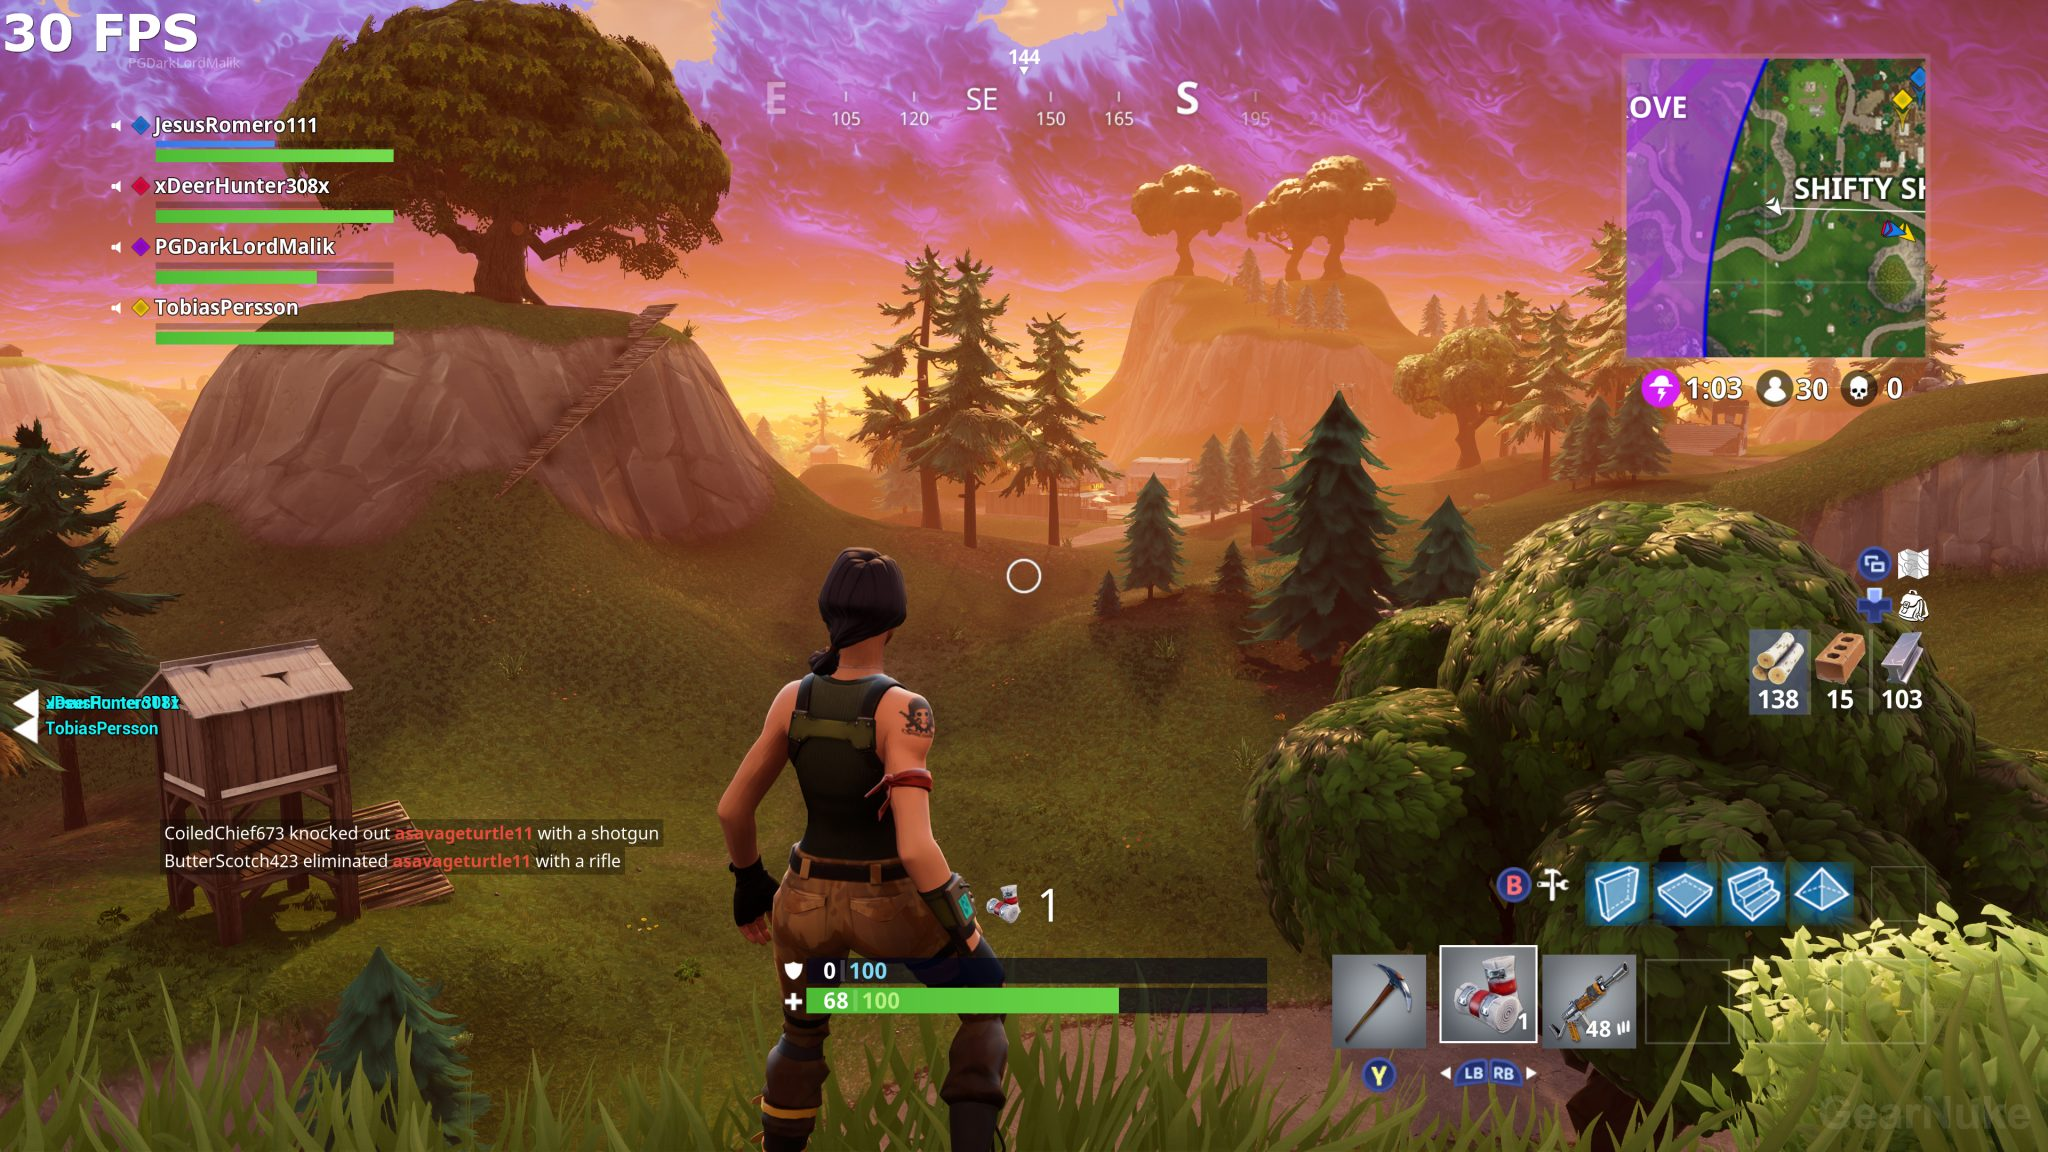 Fortnite Is Stunning At 4K60 FPS On Xbox One X Visual